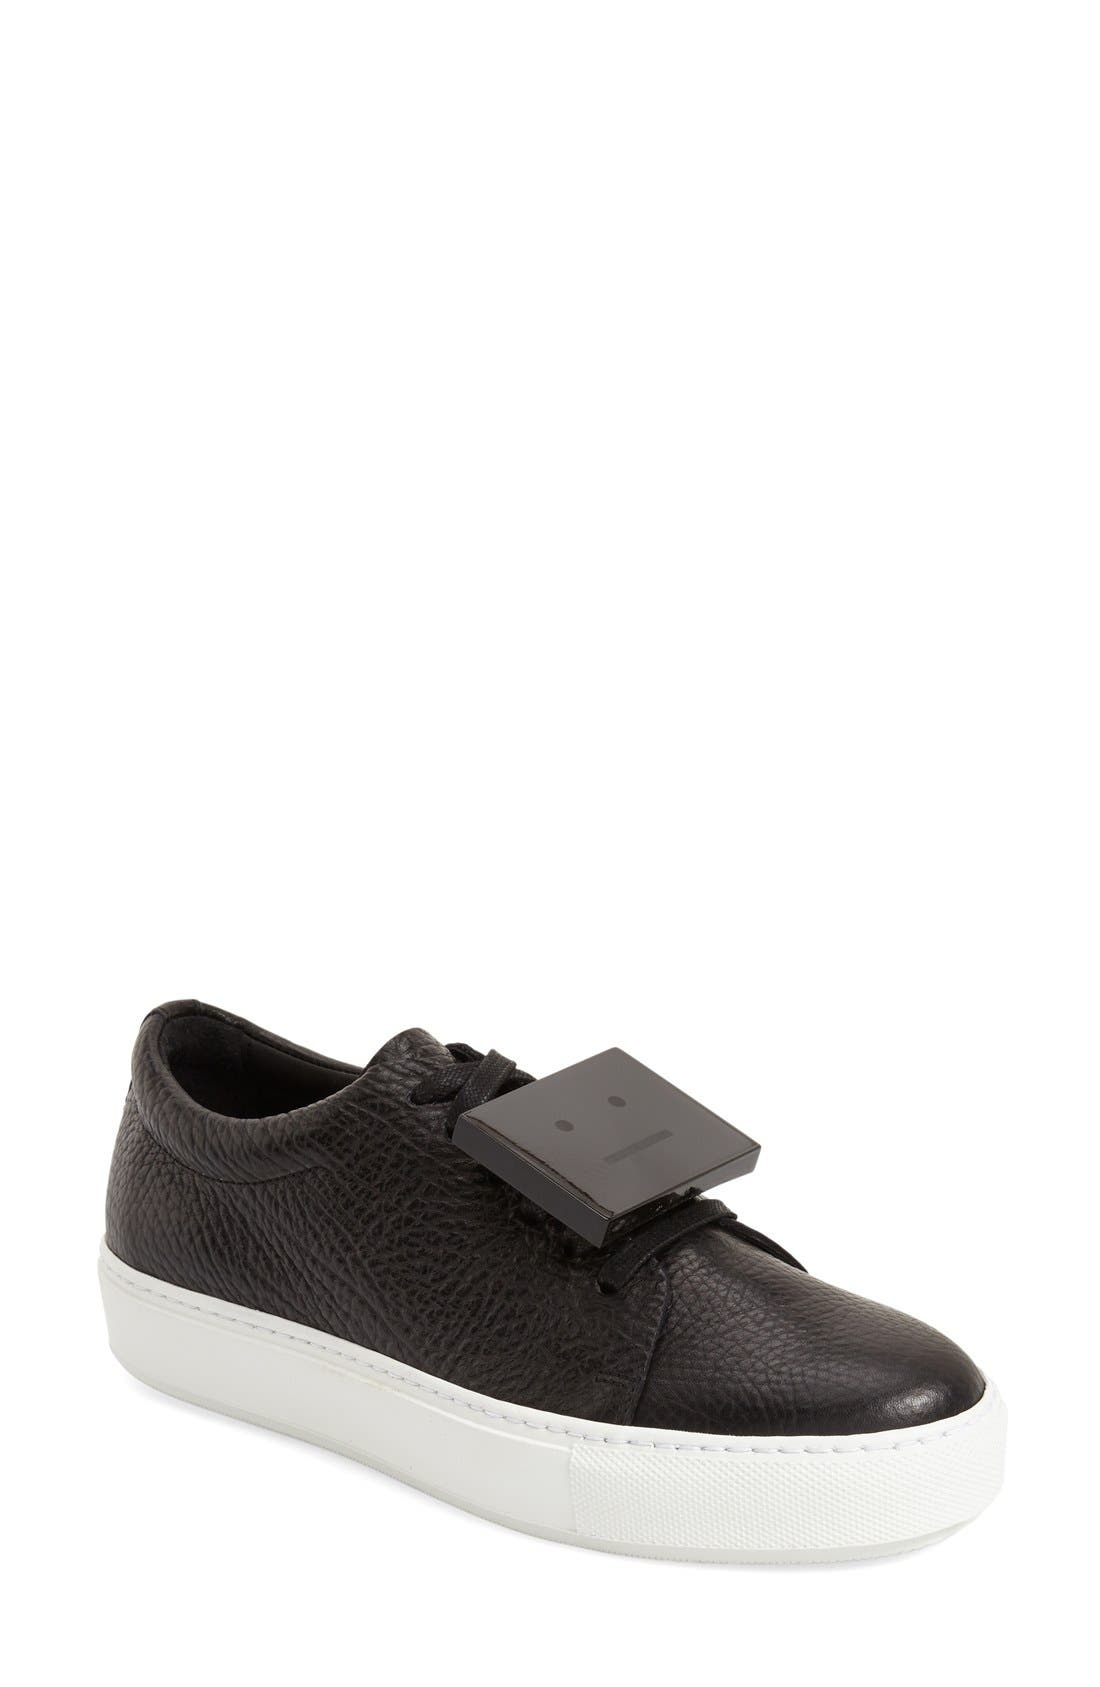 ACNE Studios 'Adriana - Grain' Leather Sneaker (Women)